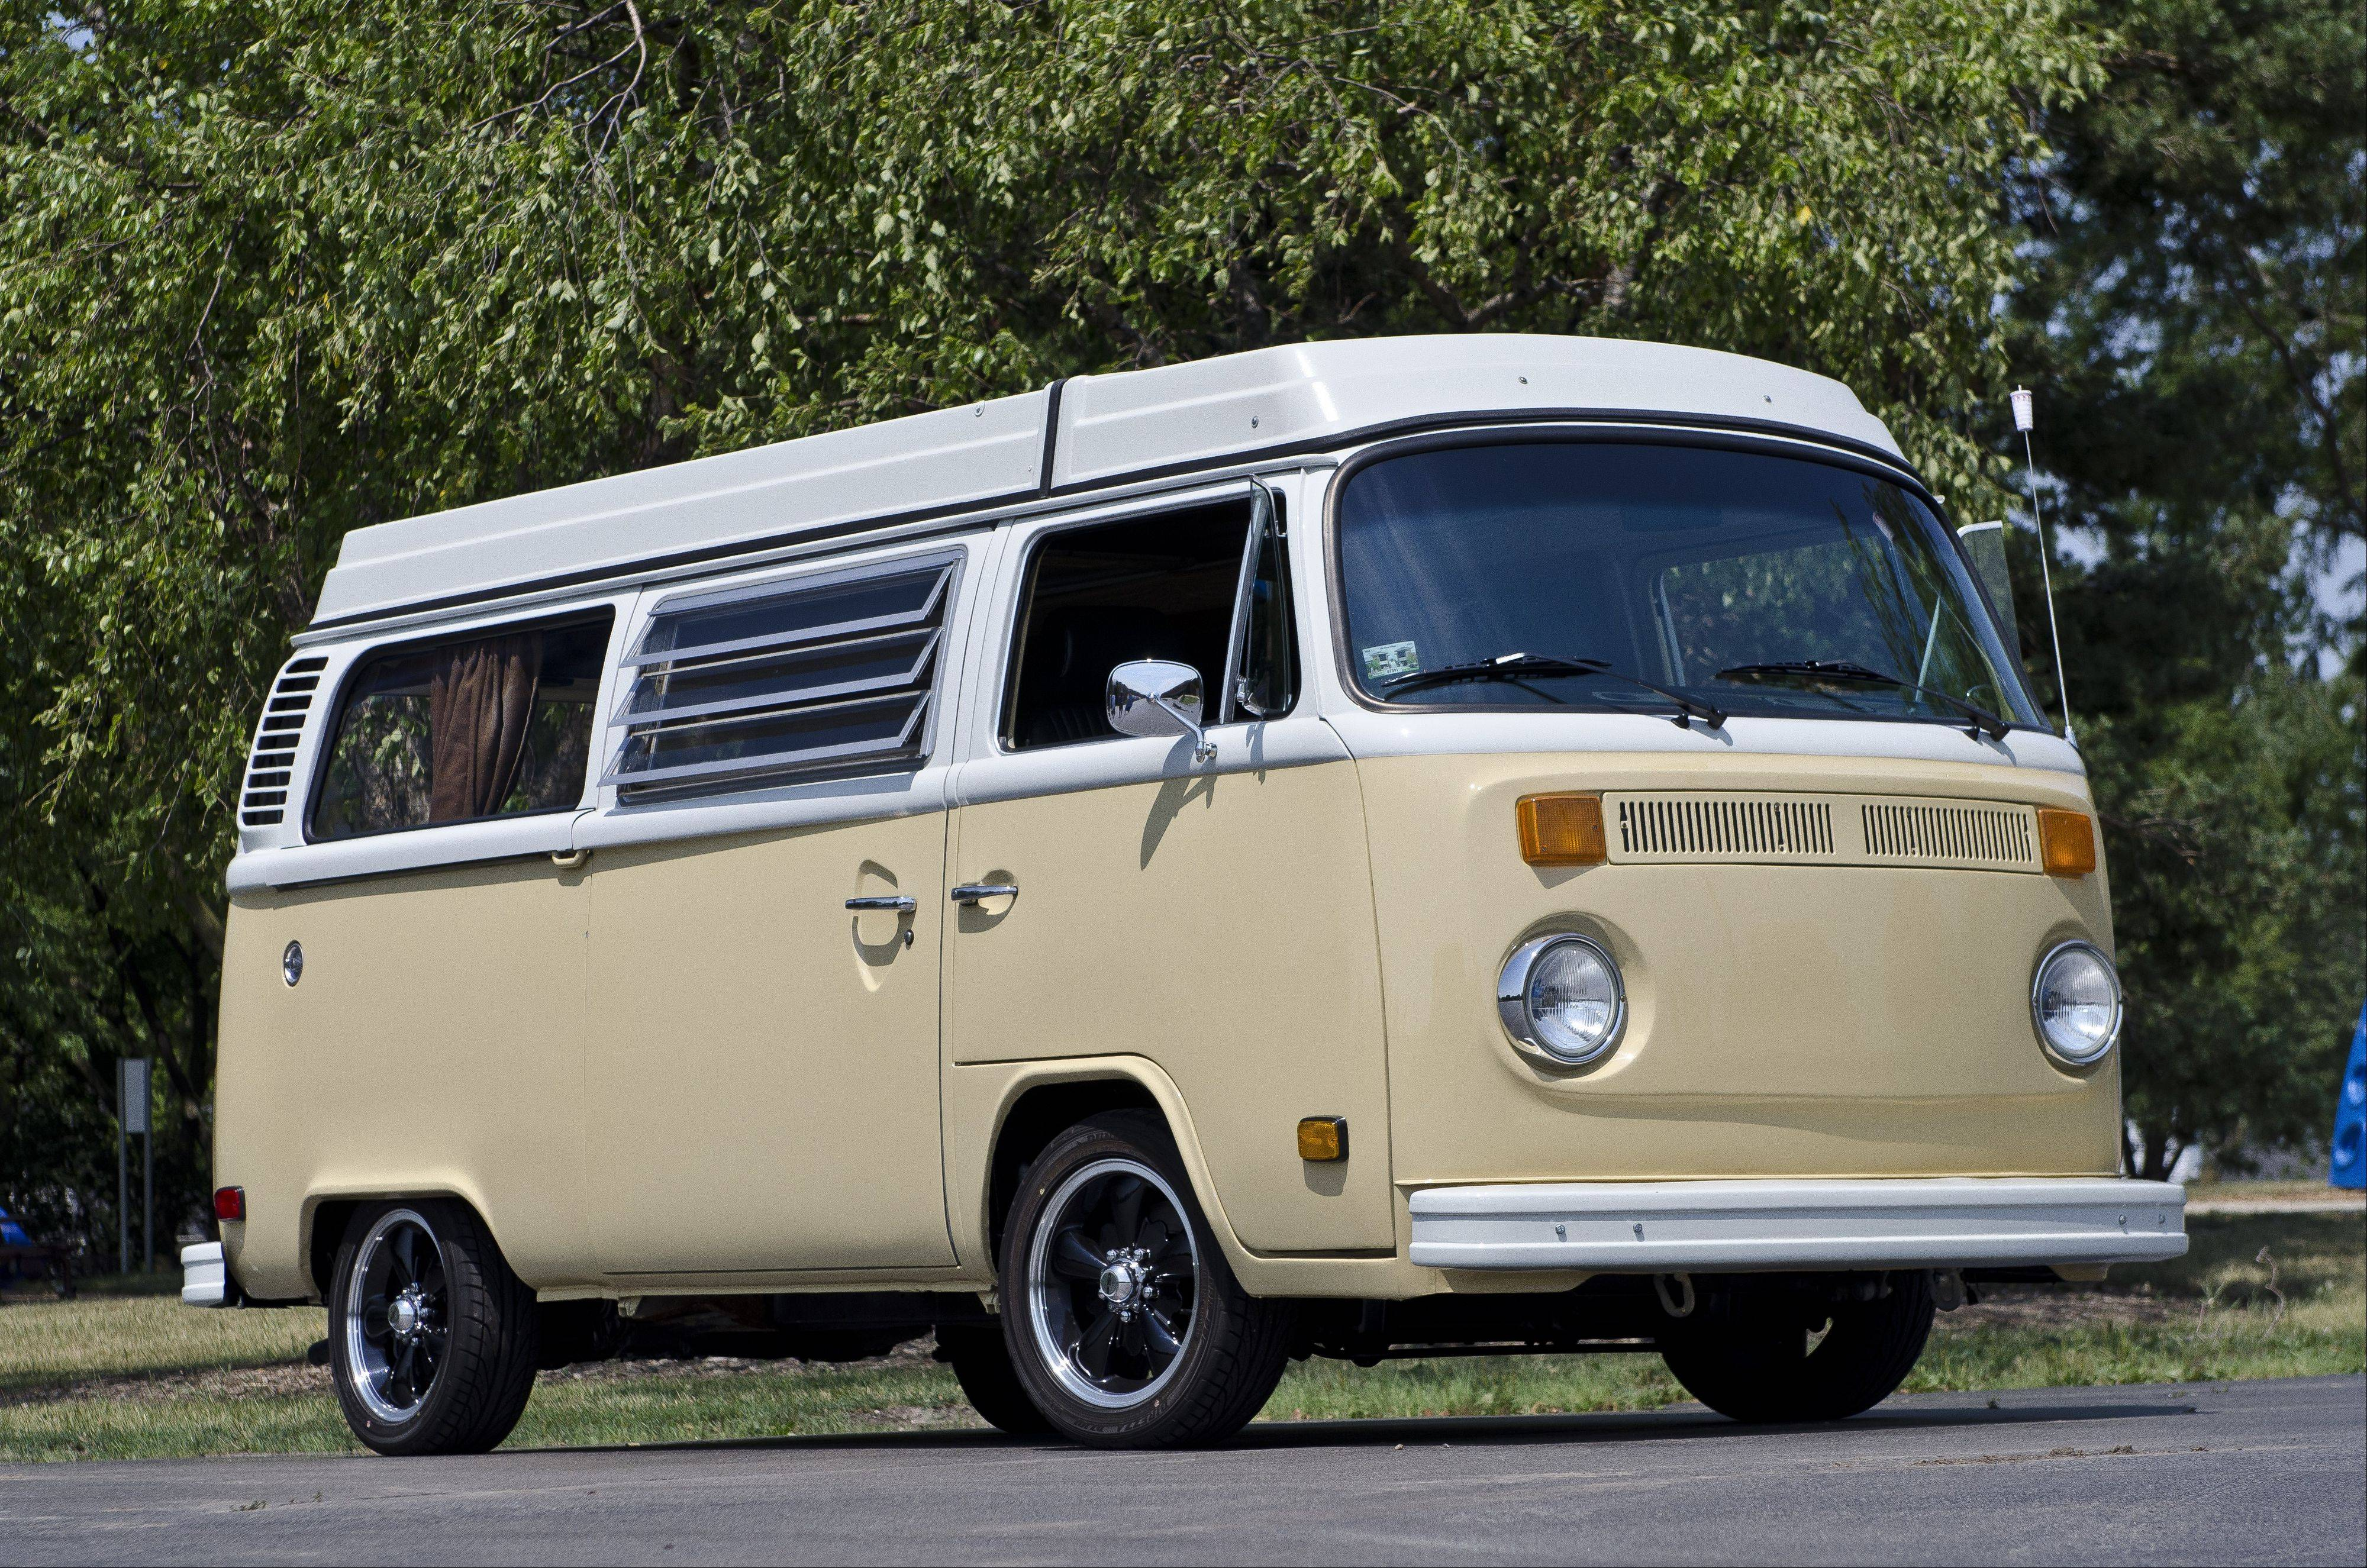 It took Jack Connelly about 10 years to fully restore this 1978 Volkswagen Bus.